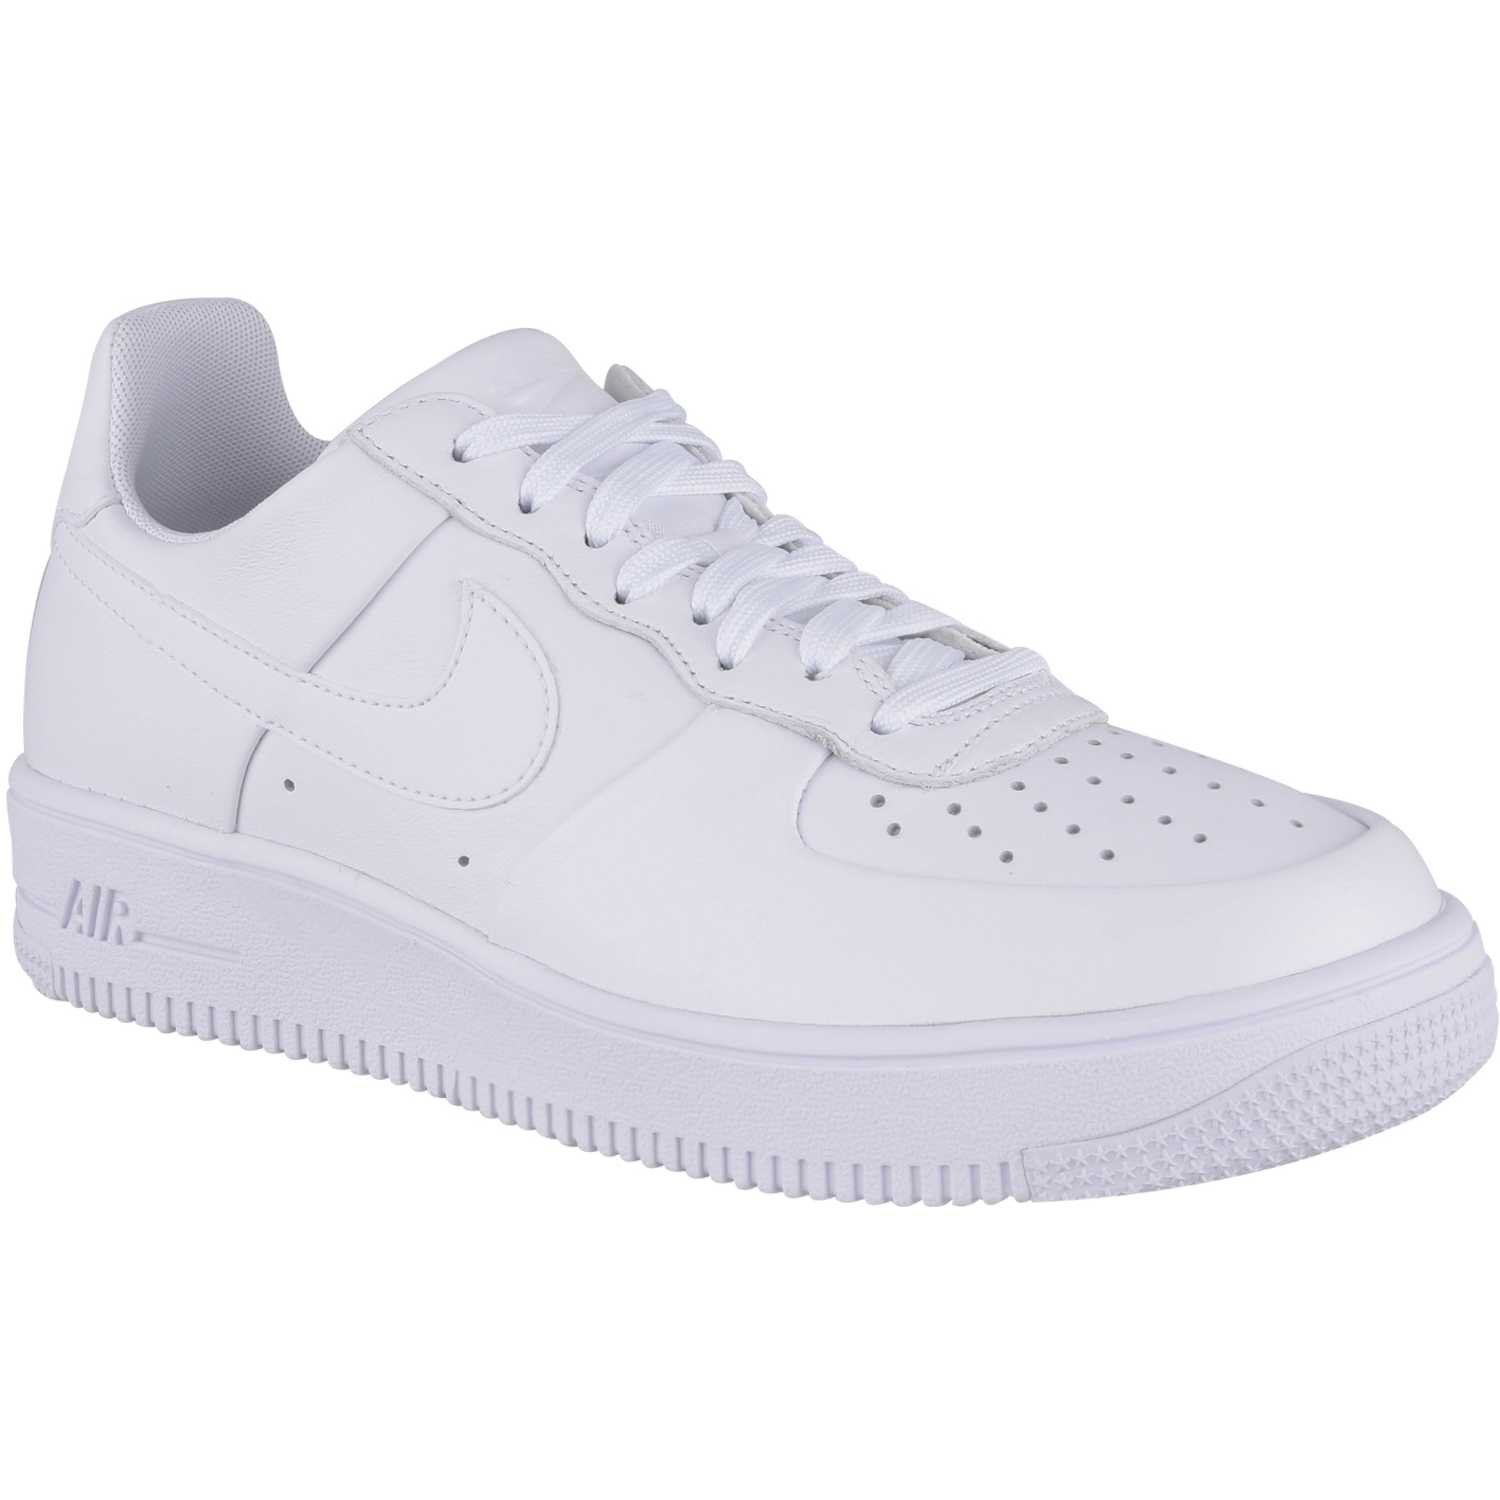 Nike air force 1 ultraforce lthr Blanco Walking